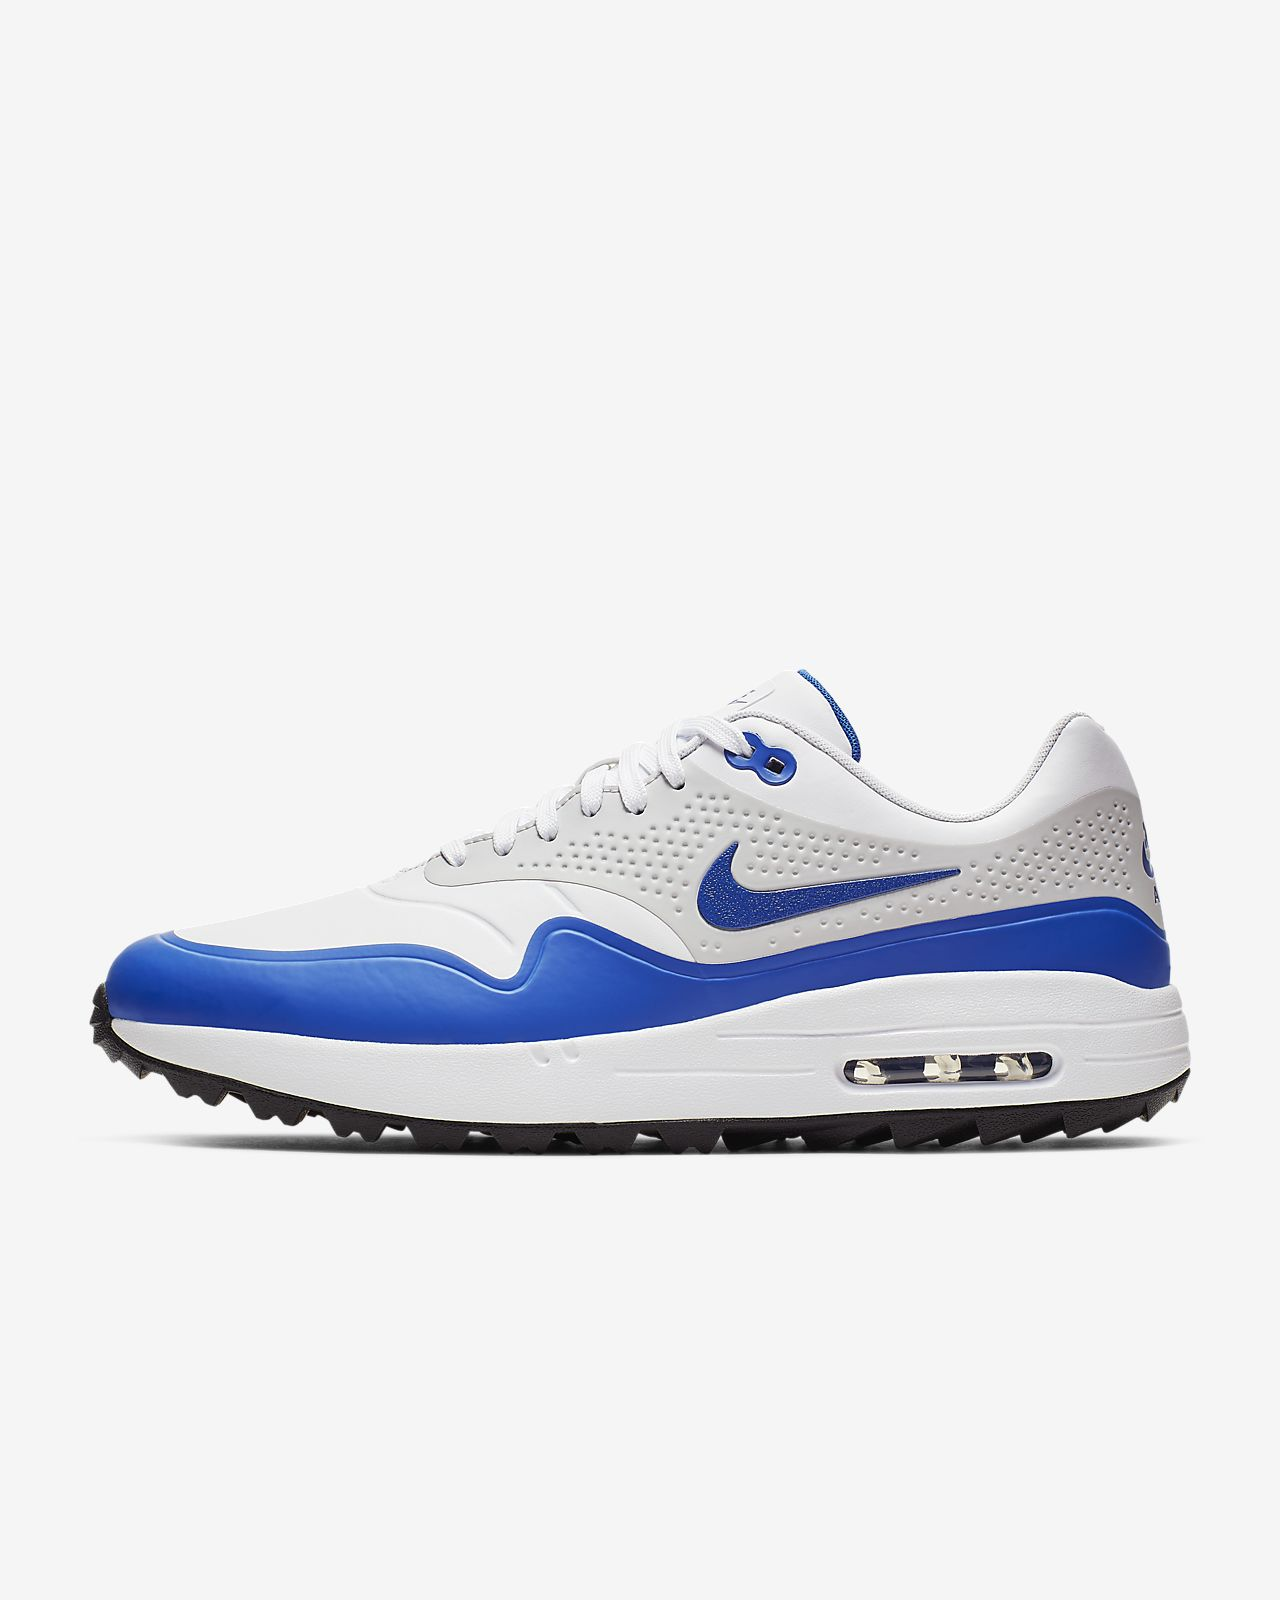 competitive price 562e7 ebf74 Nike Air Max 1 G Men's Golf Shoe